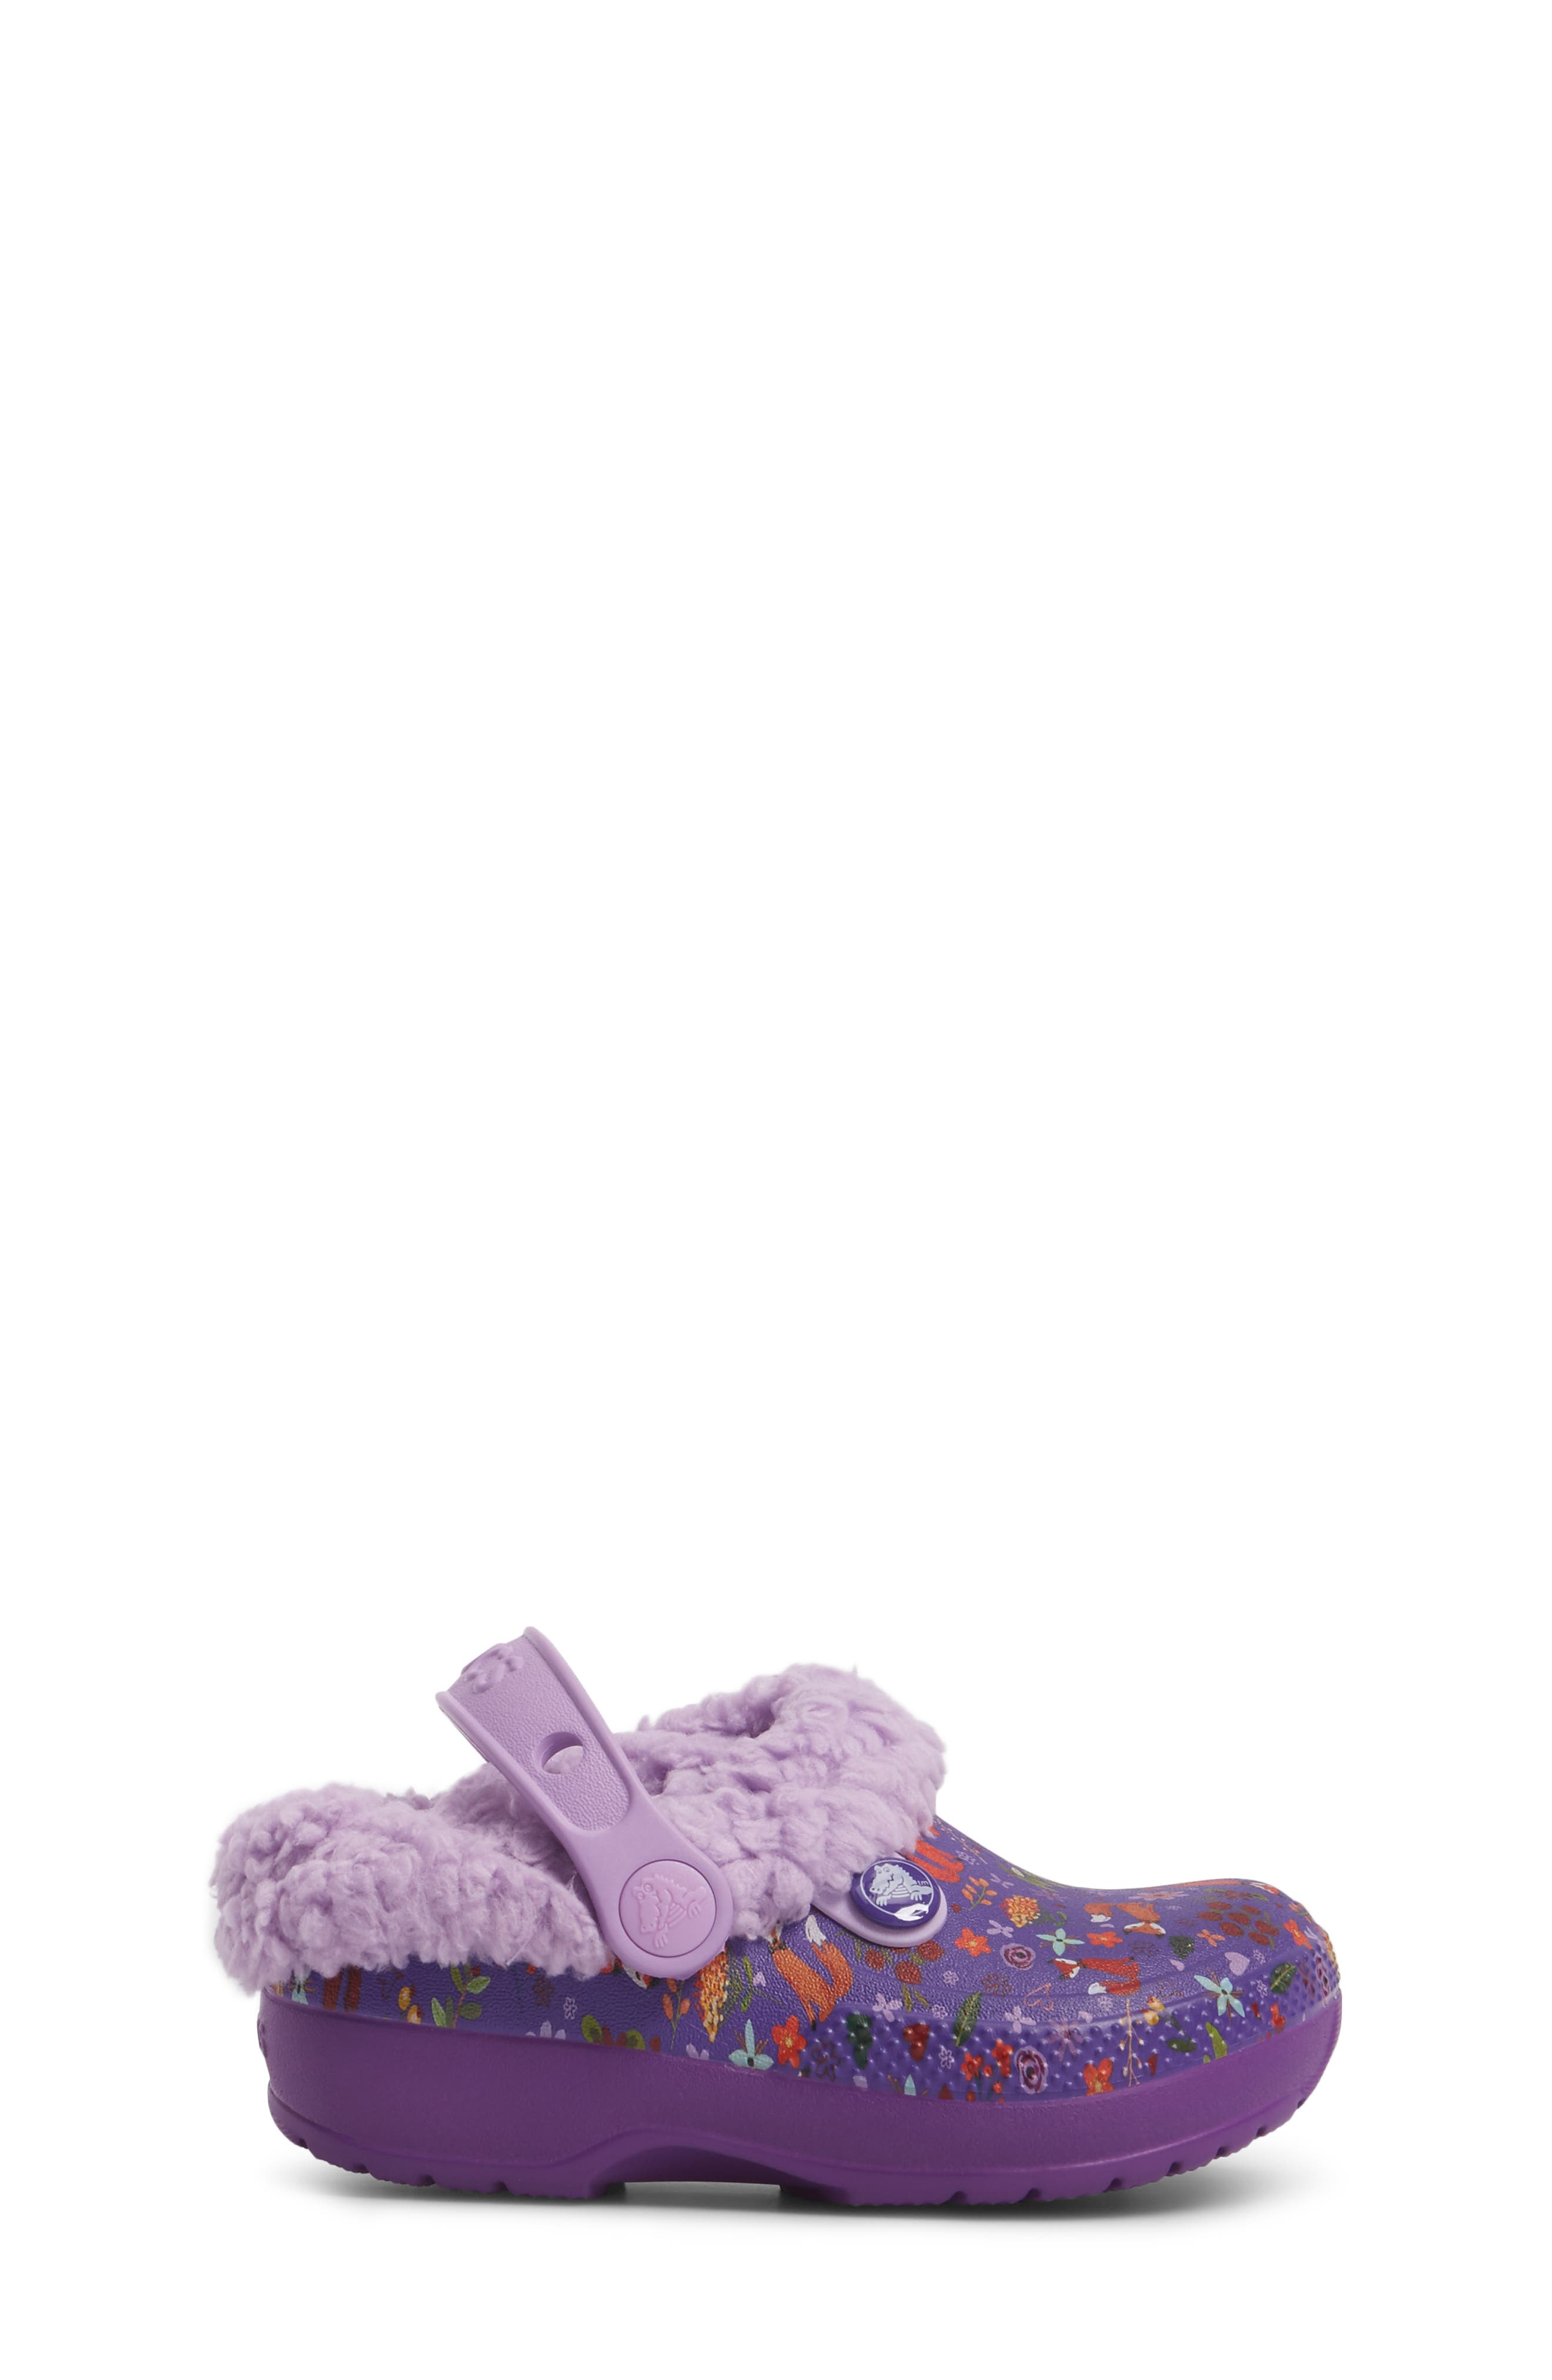 Classic Blitzen III Faux Fur Graphic Clog,                             Alternate thumbnail 3, color,                             538